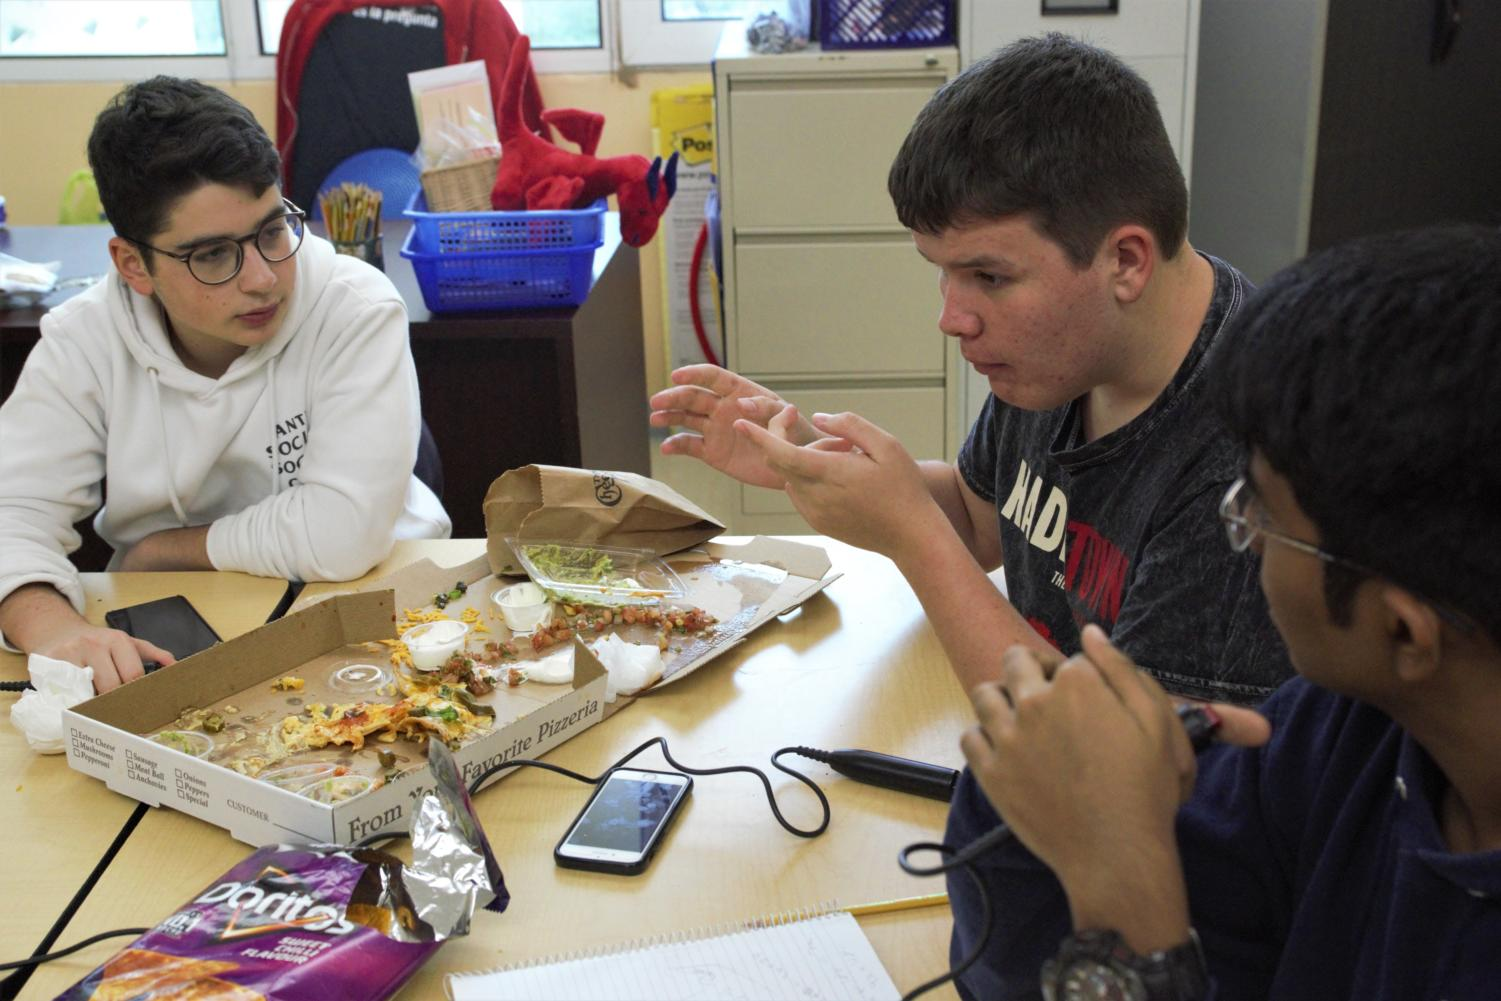 JV Academic Gamers have been polishing their cognitive skills and polishing off brainpower pizza in preparation for their season-ending competition in Kuwait.